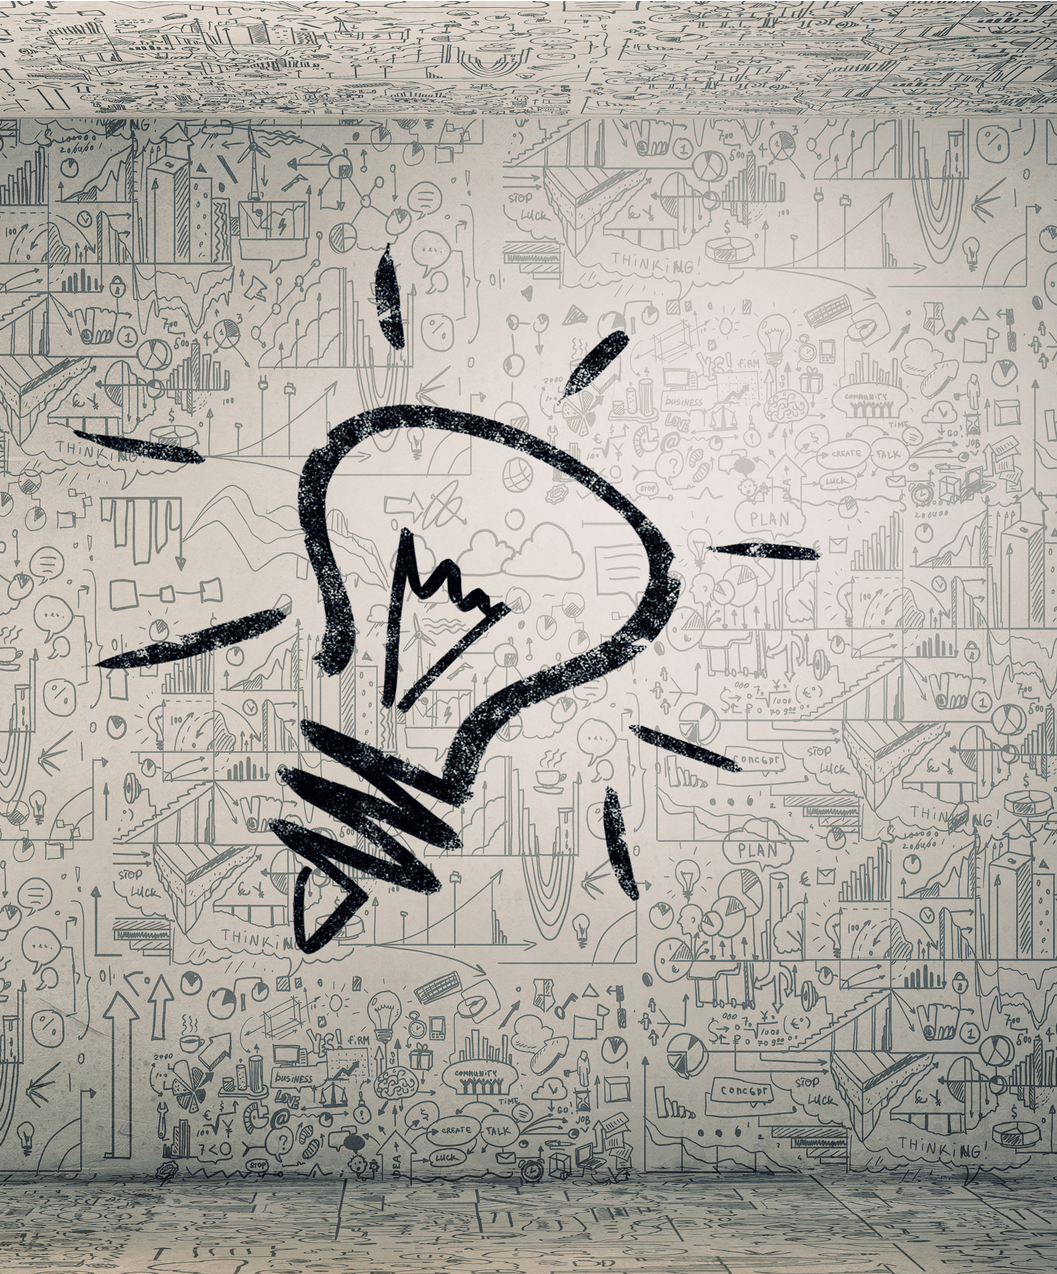 This image is a lightbulb that conveys ideas and shows scribbles on a wall behind ist